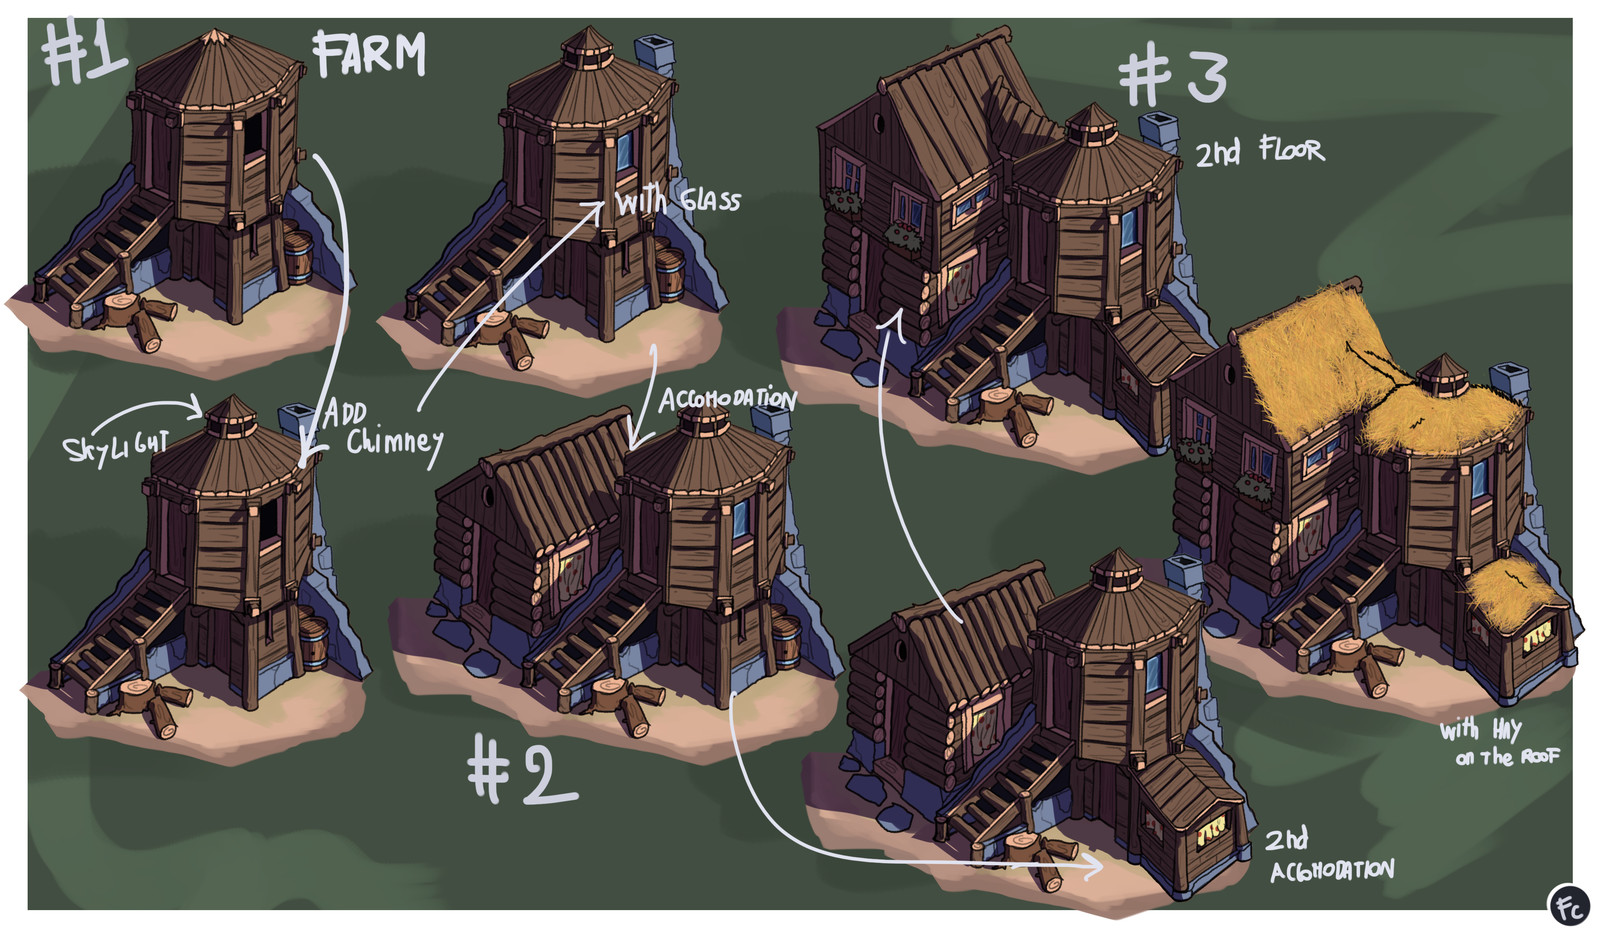 Farm 2 , from tier 1 to tier 3